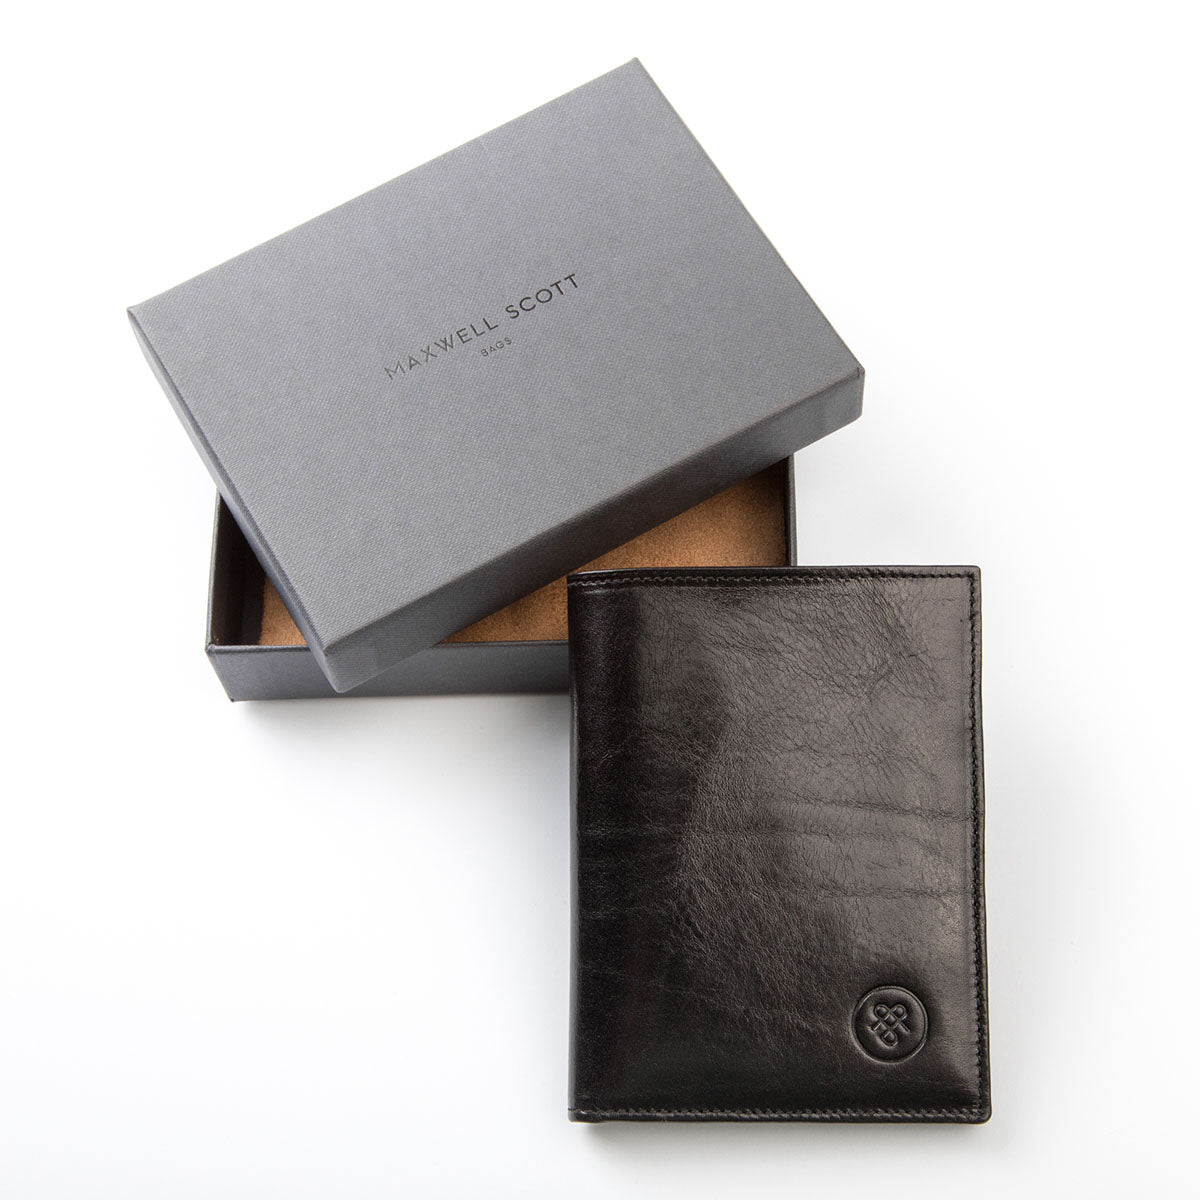 Image 6 of the Black Leather Billfold Card Wallet